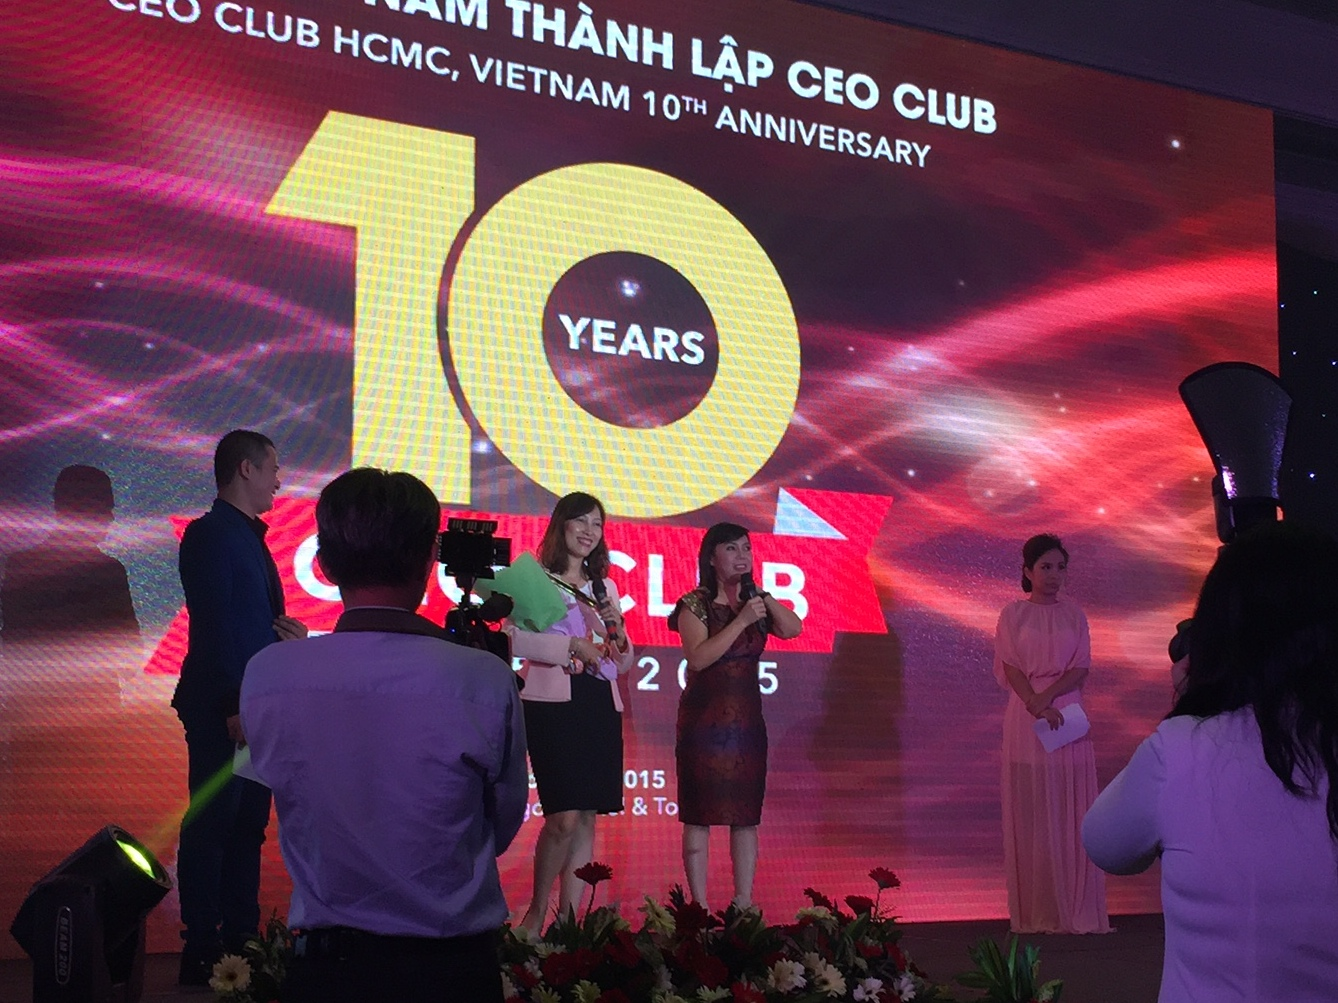 HR2B Celebrates With CEO Club 10 Years